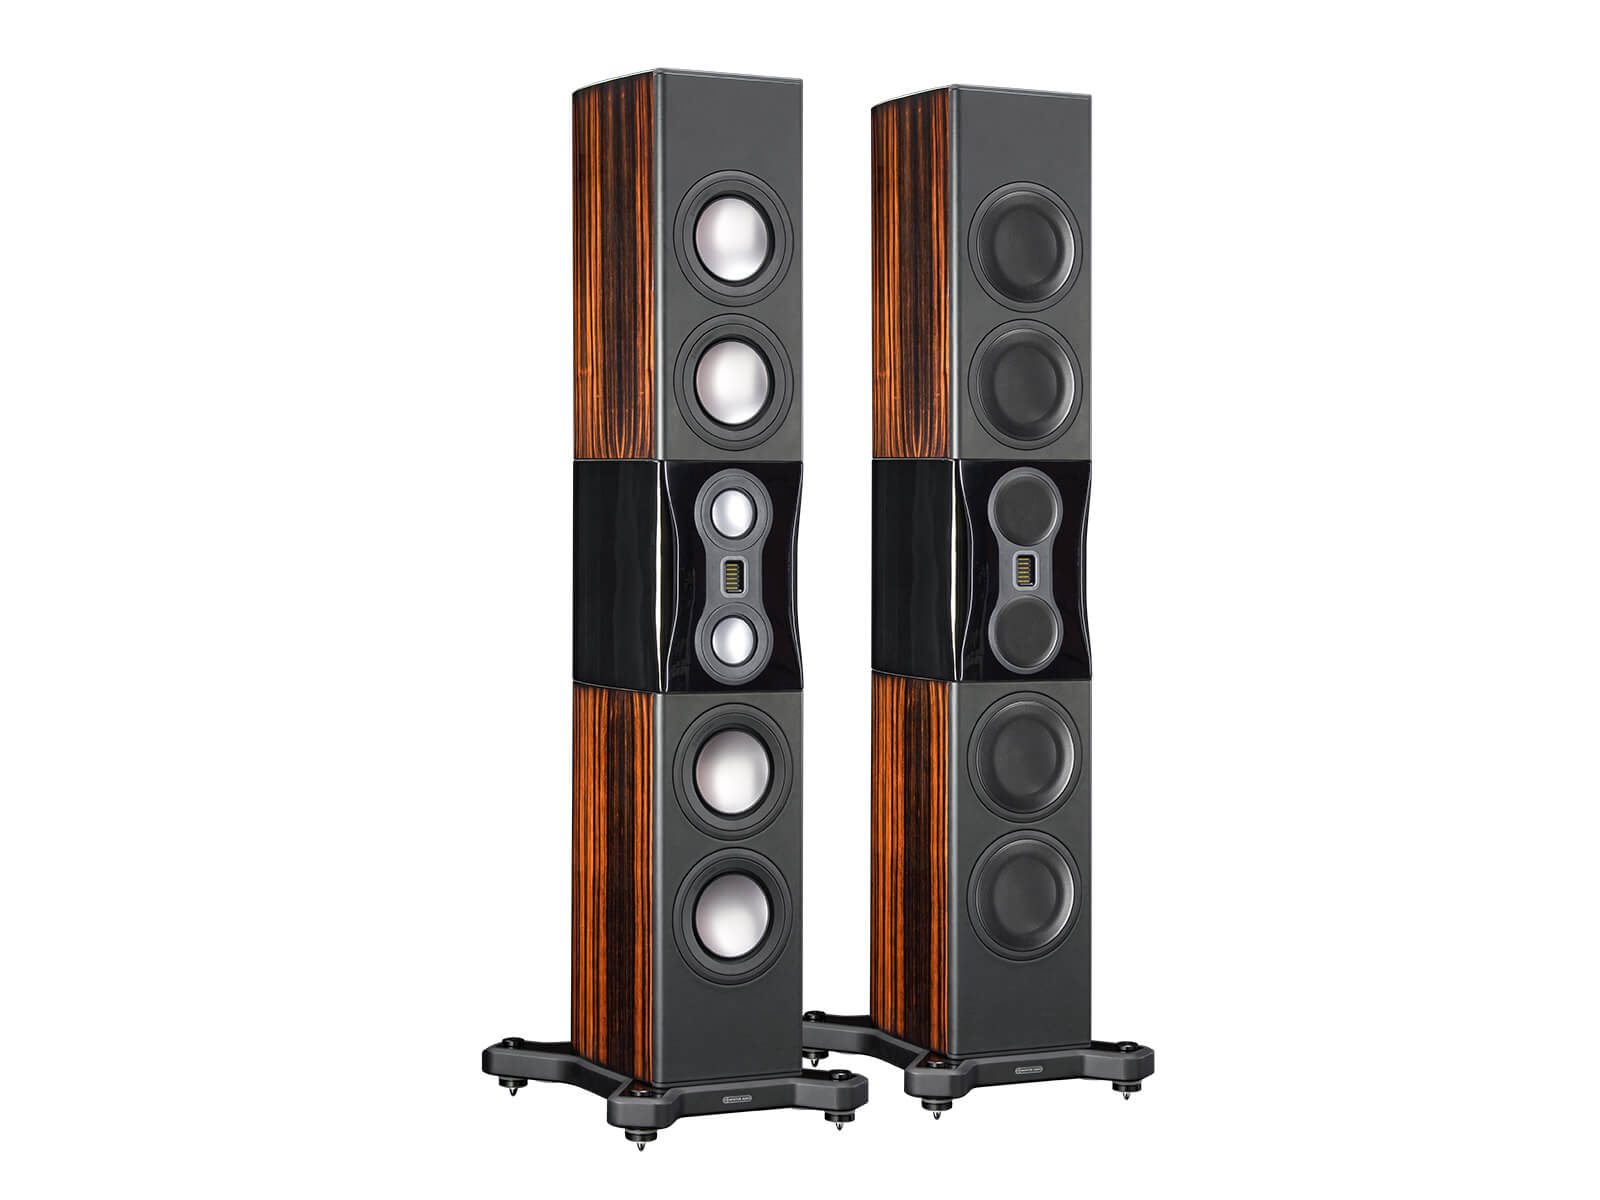 Platinum PL500 II, grille-less floorstanding speakers, with a santos rosewood real wood veneer finish.